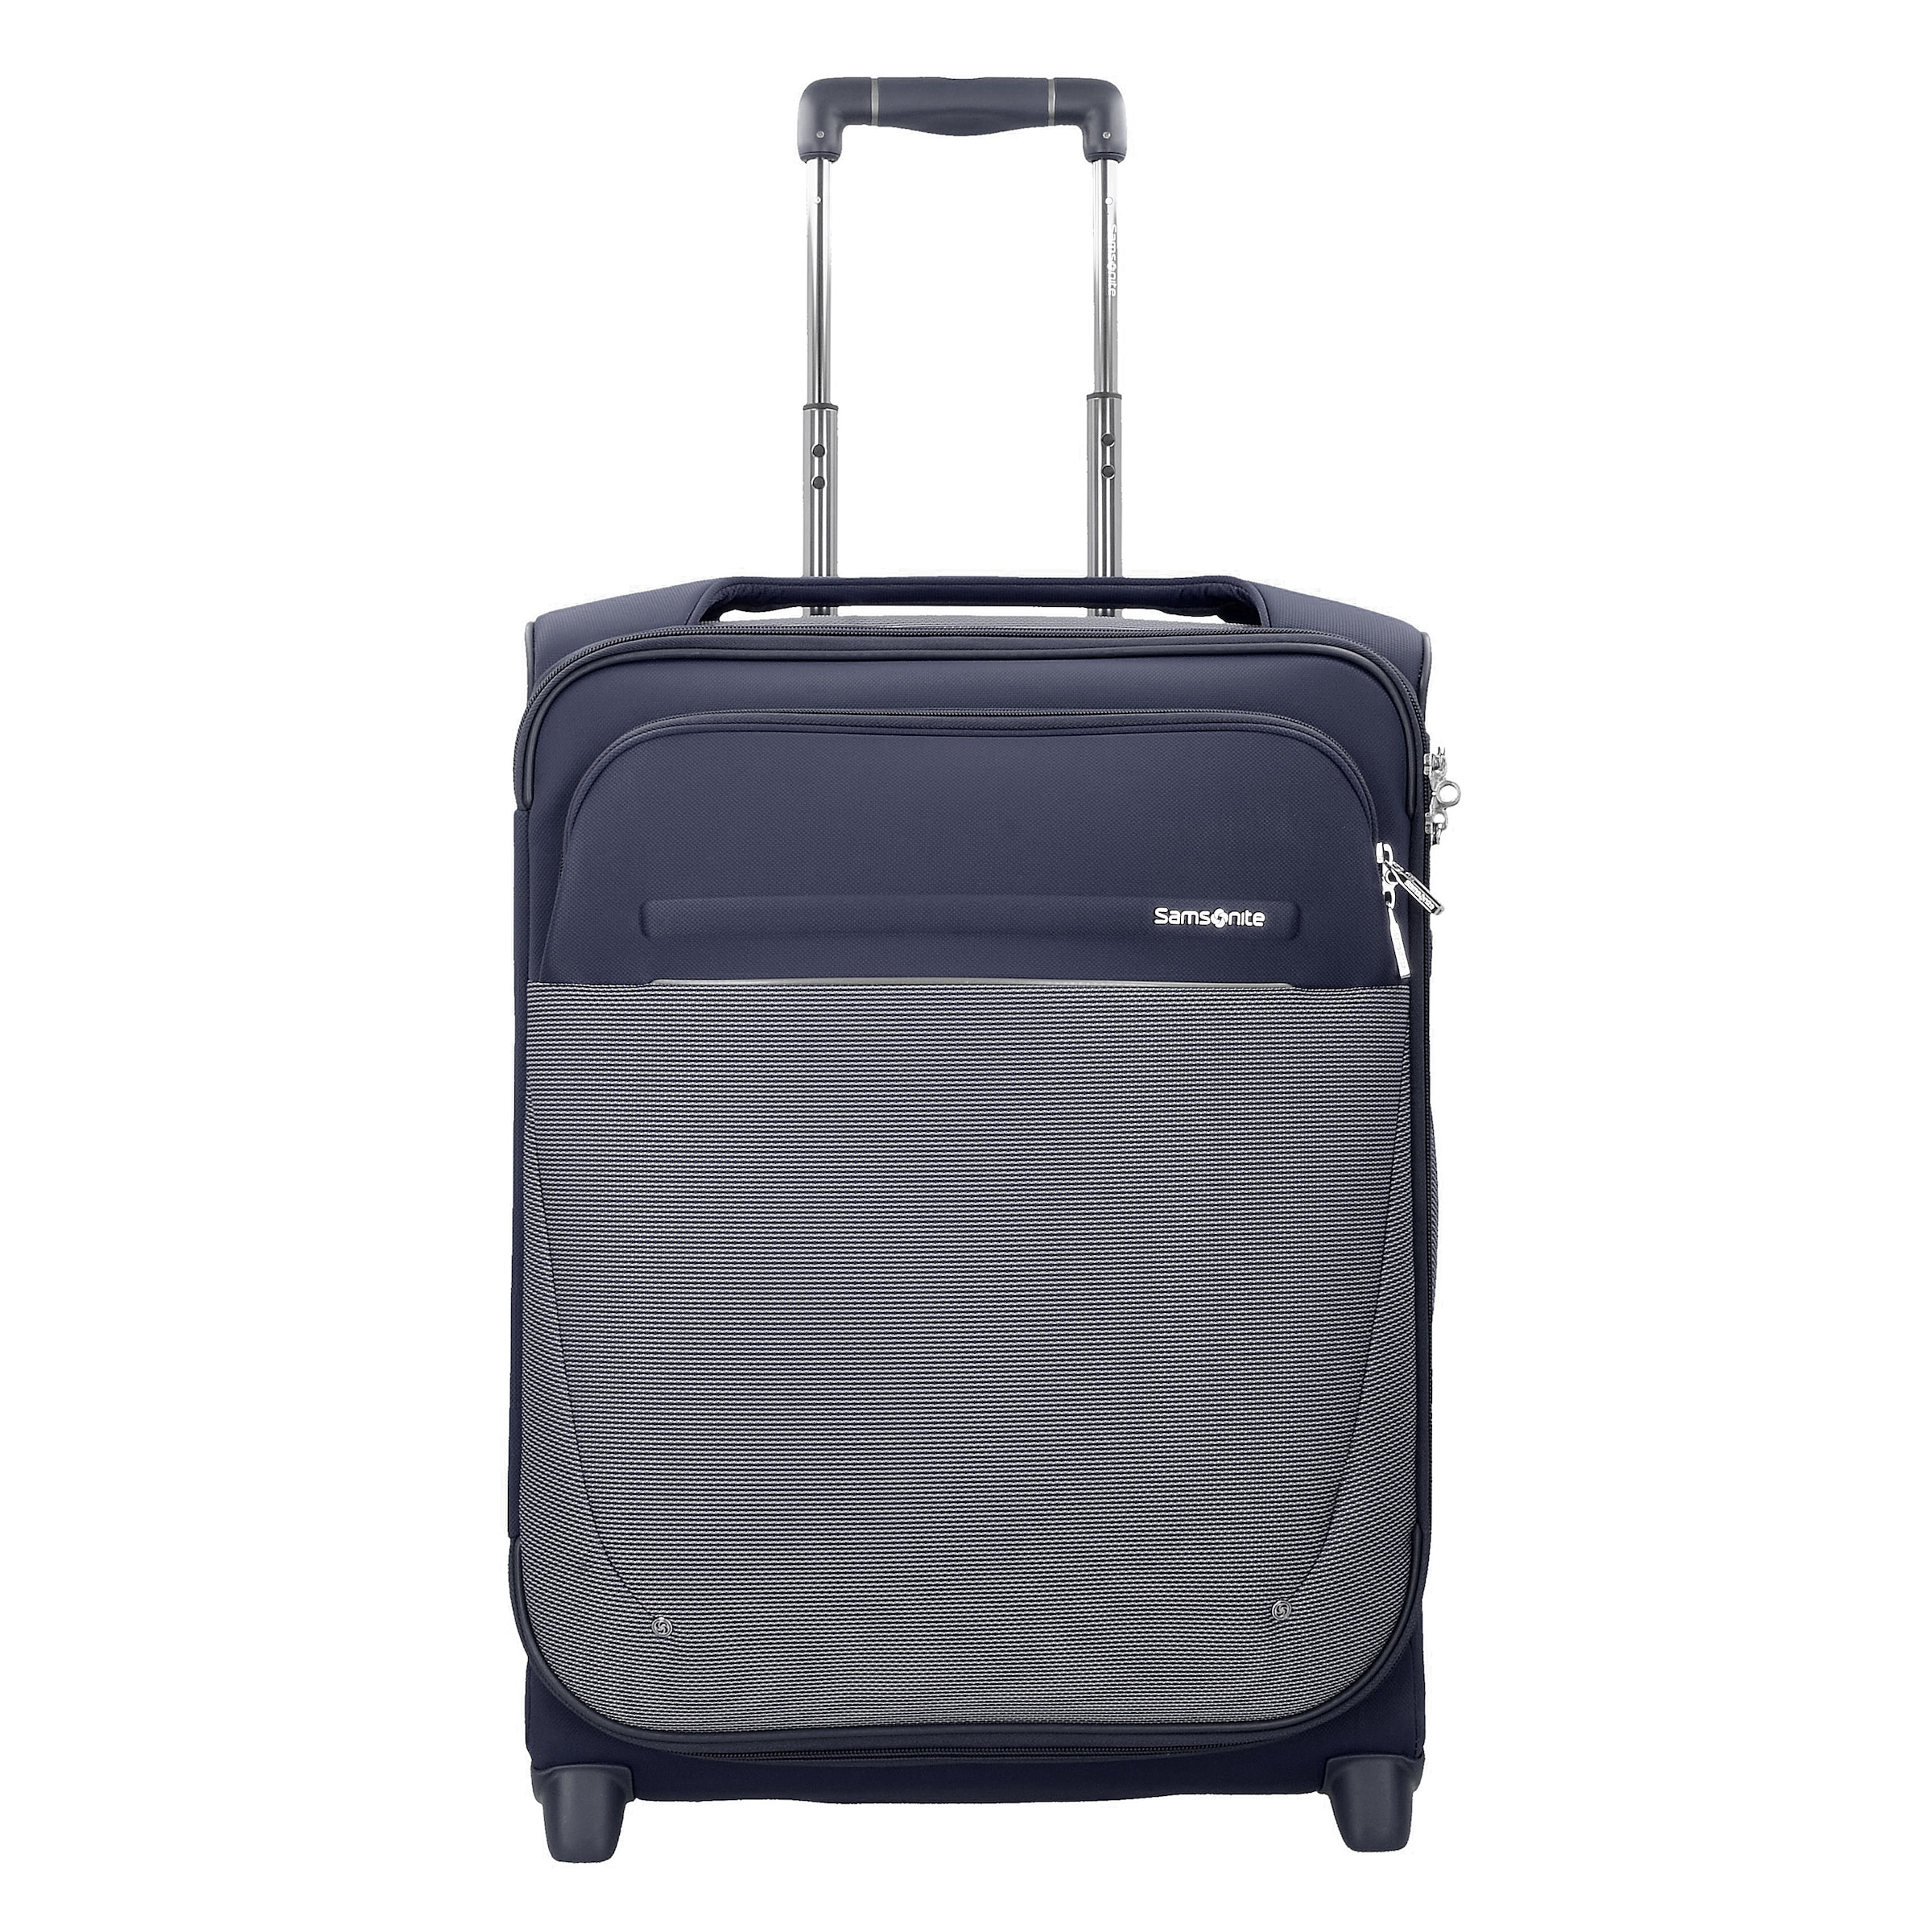 In Kabinentrolley In Samsonite Samsonite Kabinentrolley Dunkelblau Samsonite Dunkelblau Kabinentrolley IY7gbfvy6